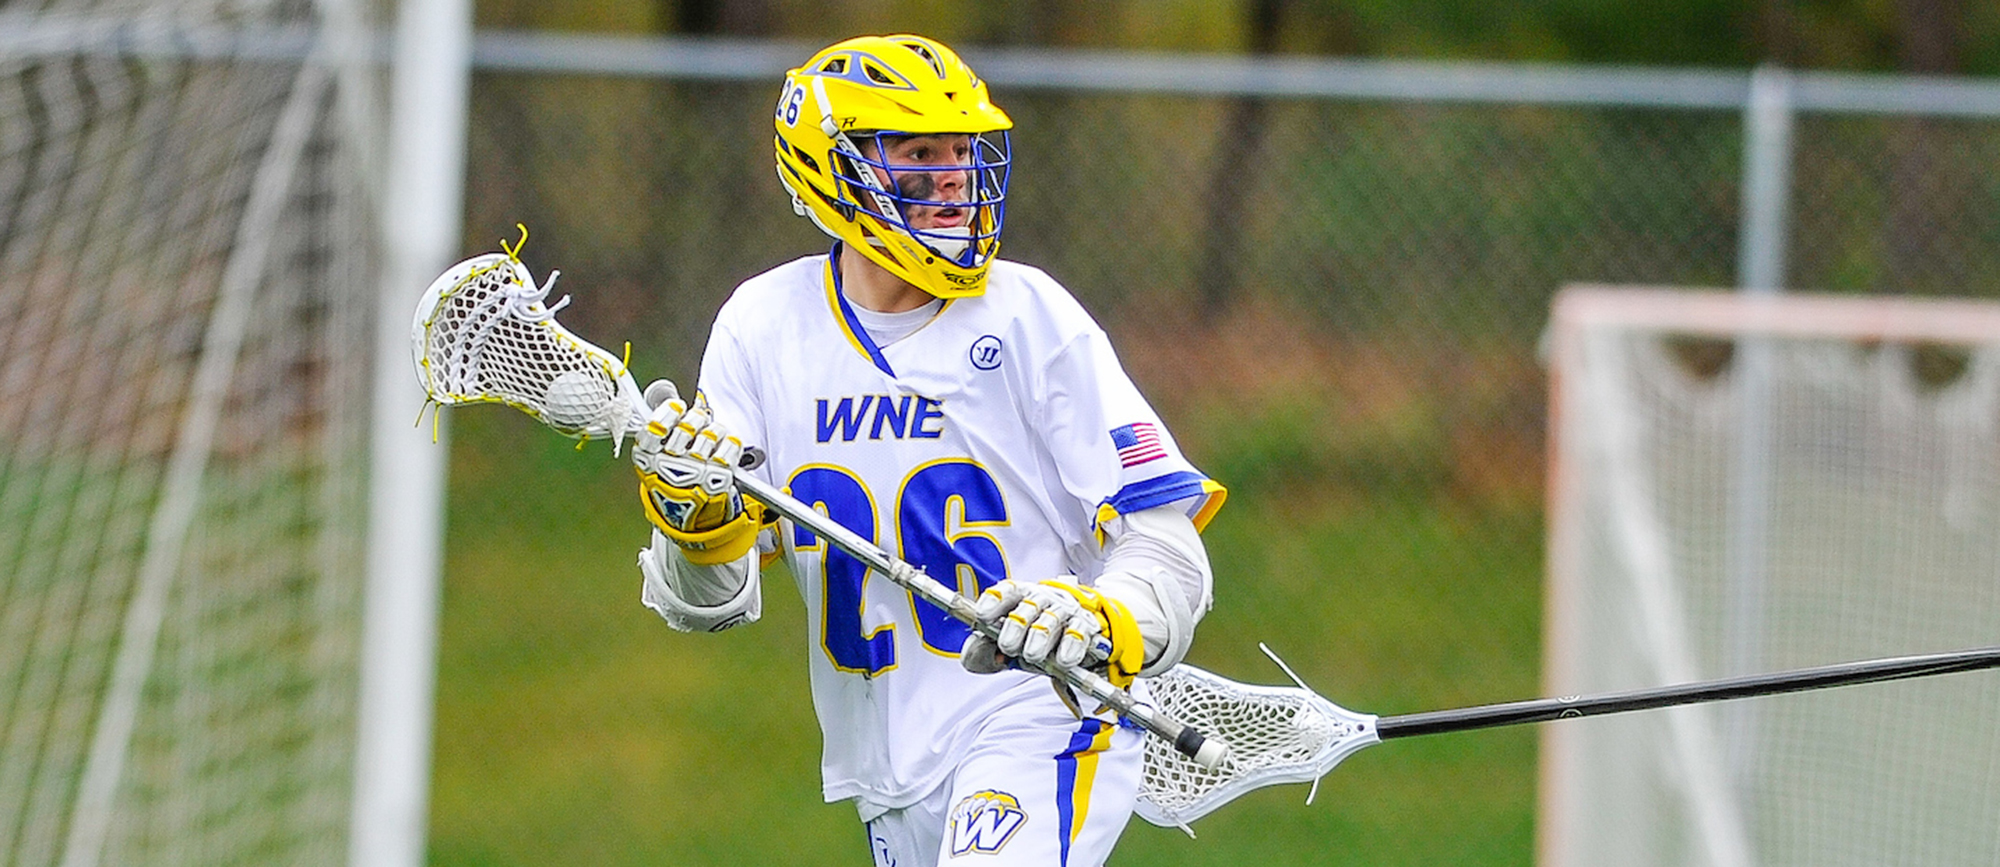 Junior Jared Ward recorded four points (two goals, two assists) in Western New England's 13-10 win at Keene State on Tuesday. (Photo by Bill Sharon/Spartan Sportshots)